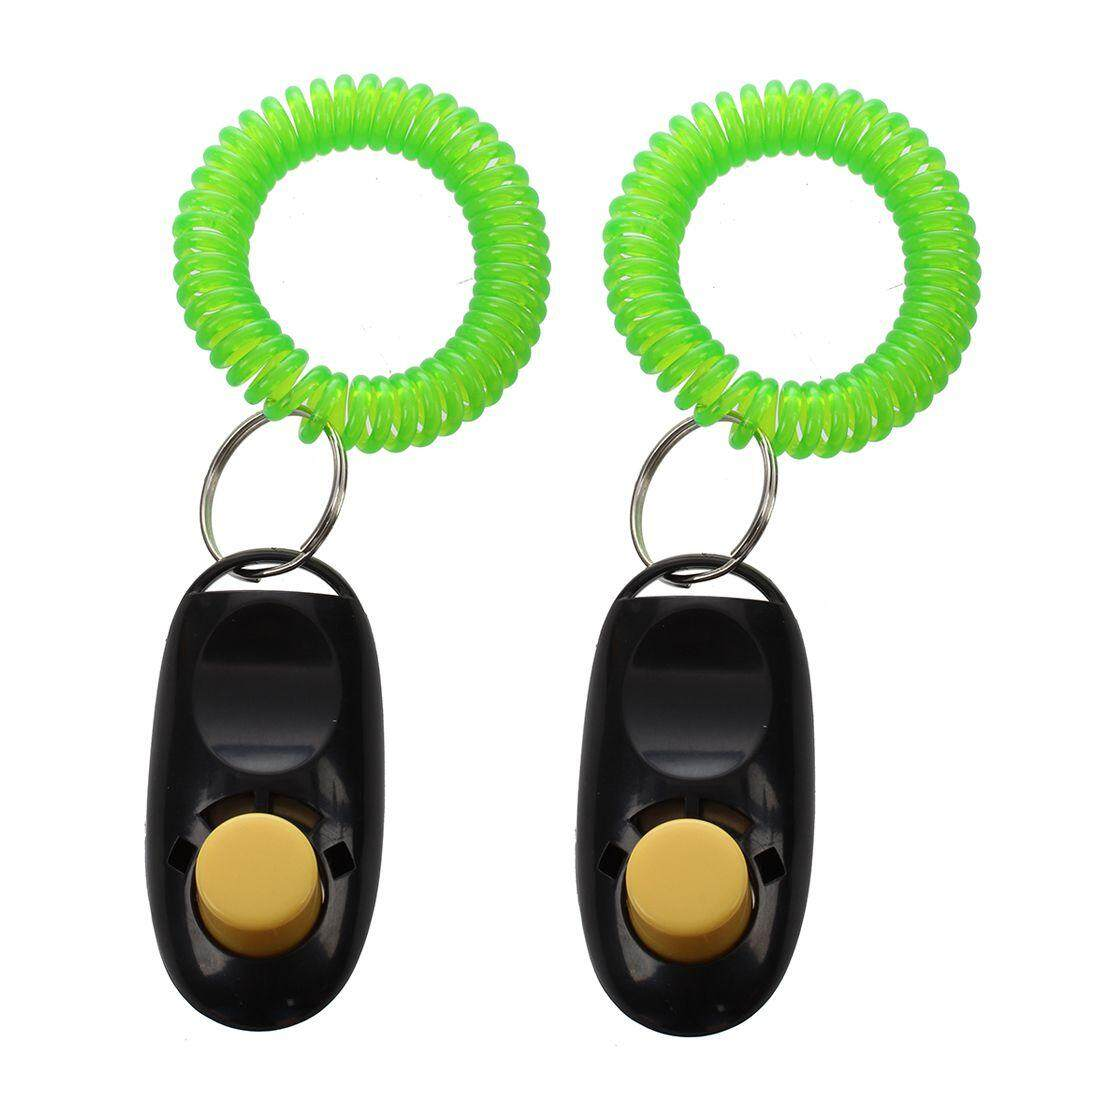 2pcs Pet Dog Cat Button Click Clicker Trainer Training Obedience Aid Wrist Strap Black By Yoyonow.